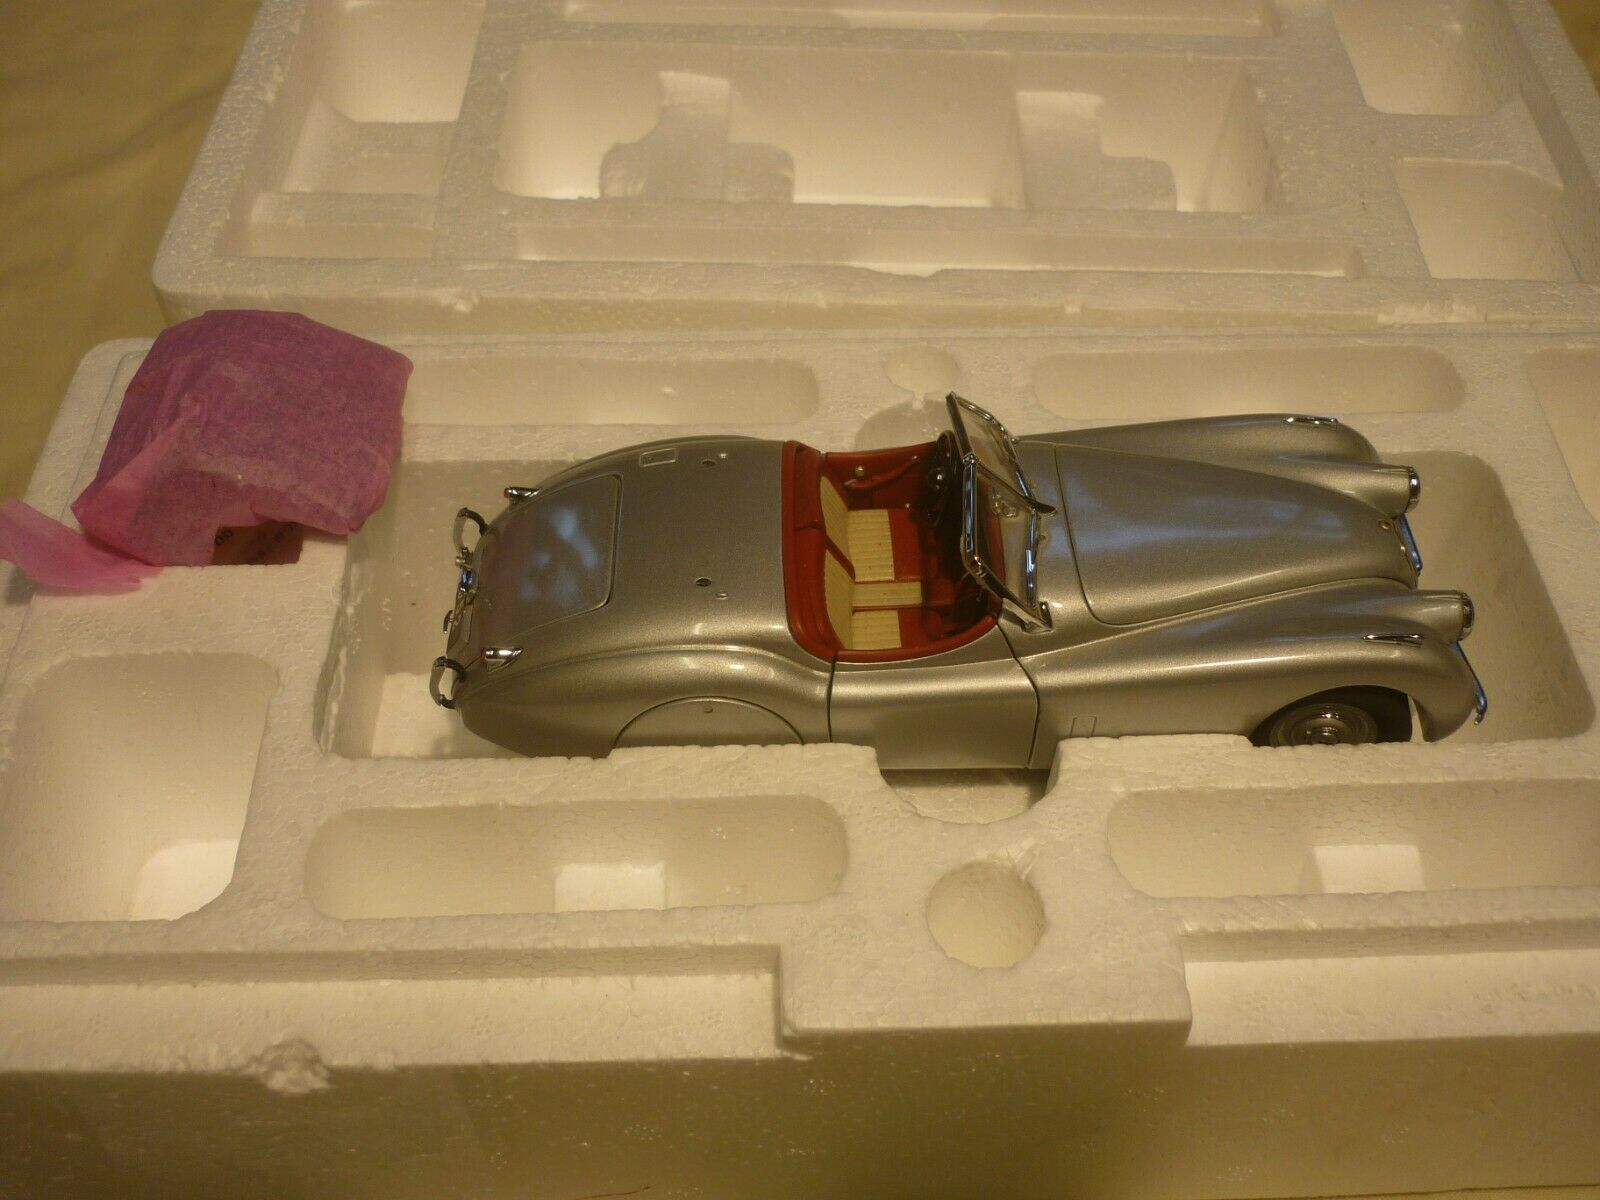 A franklin mint of a scale model of a 1952 jaguar XK120 with hood